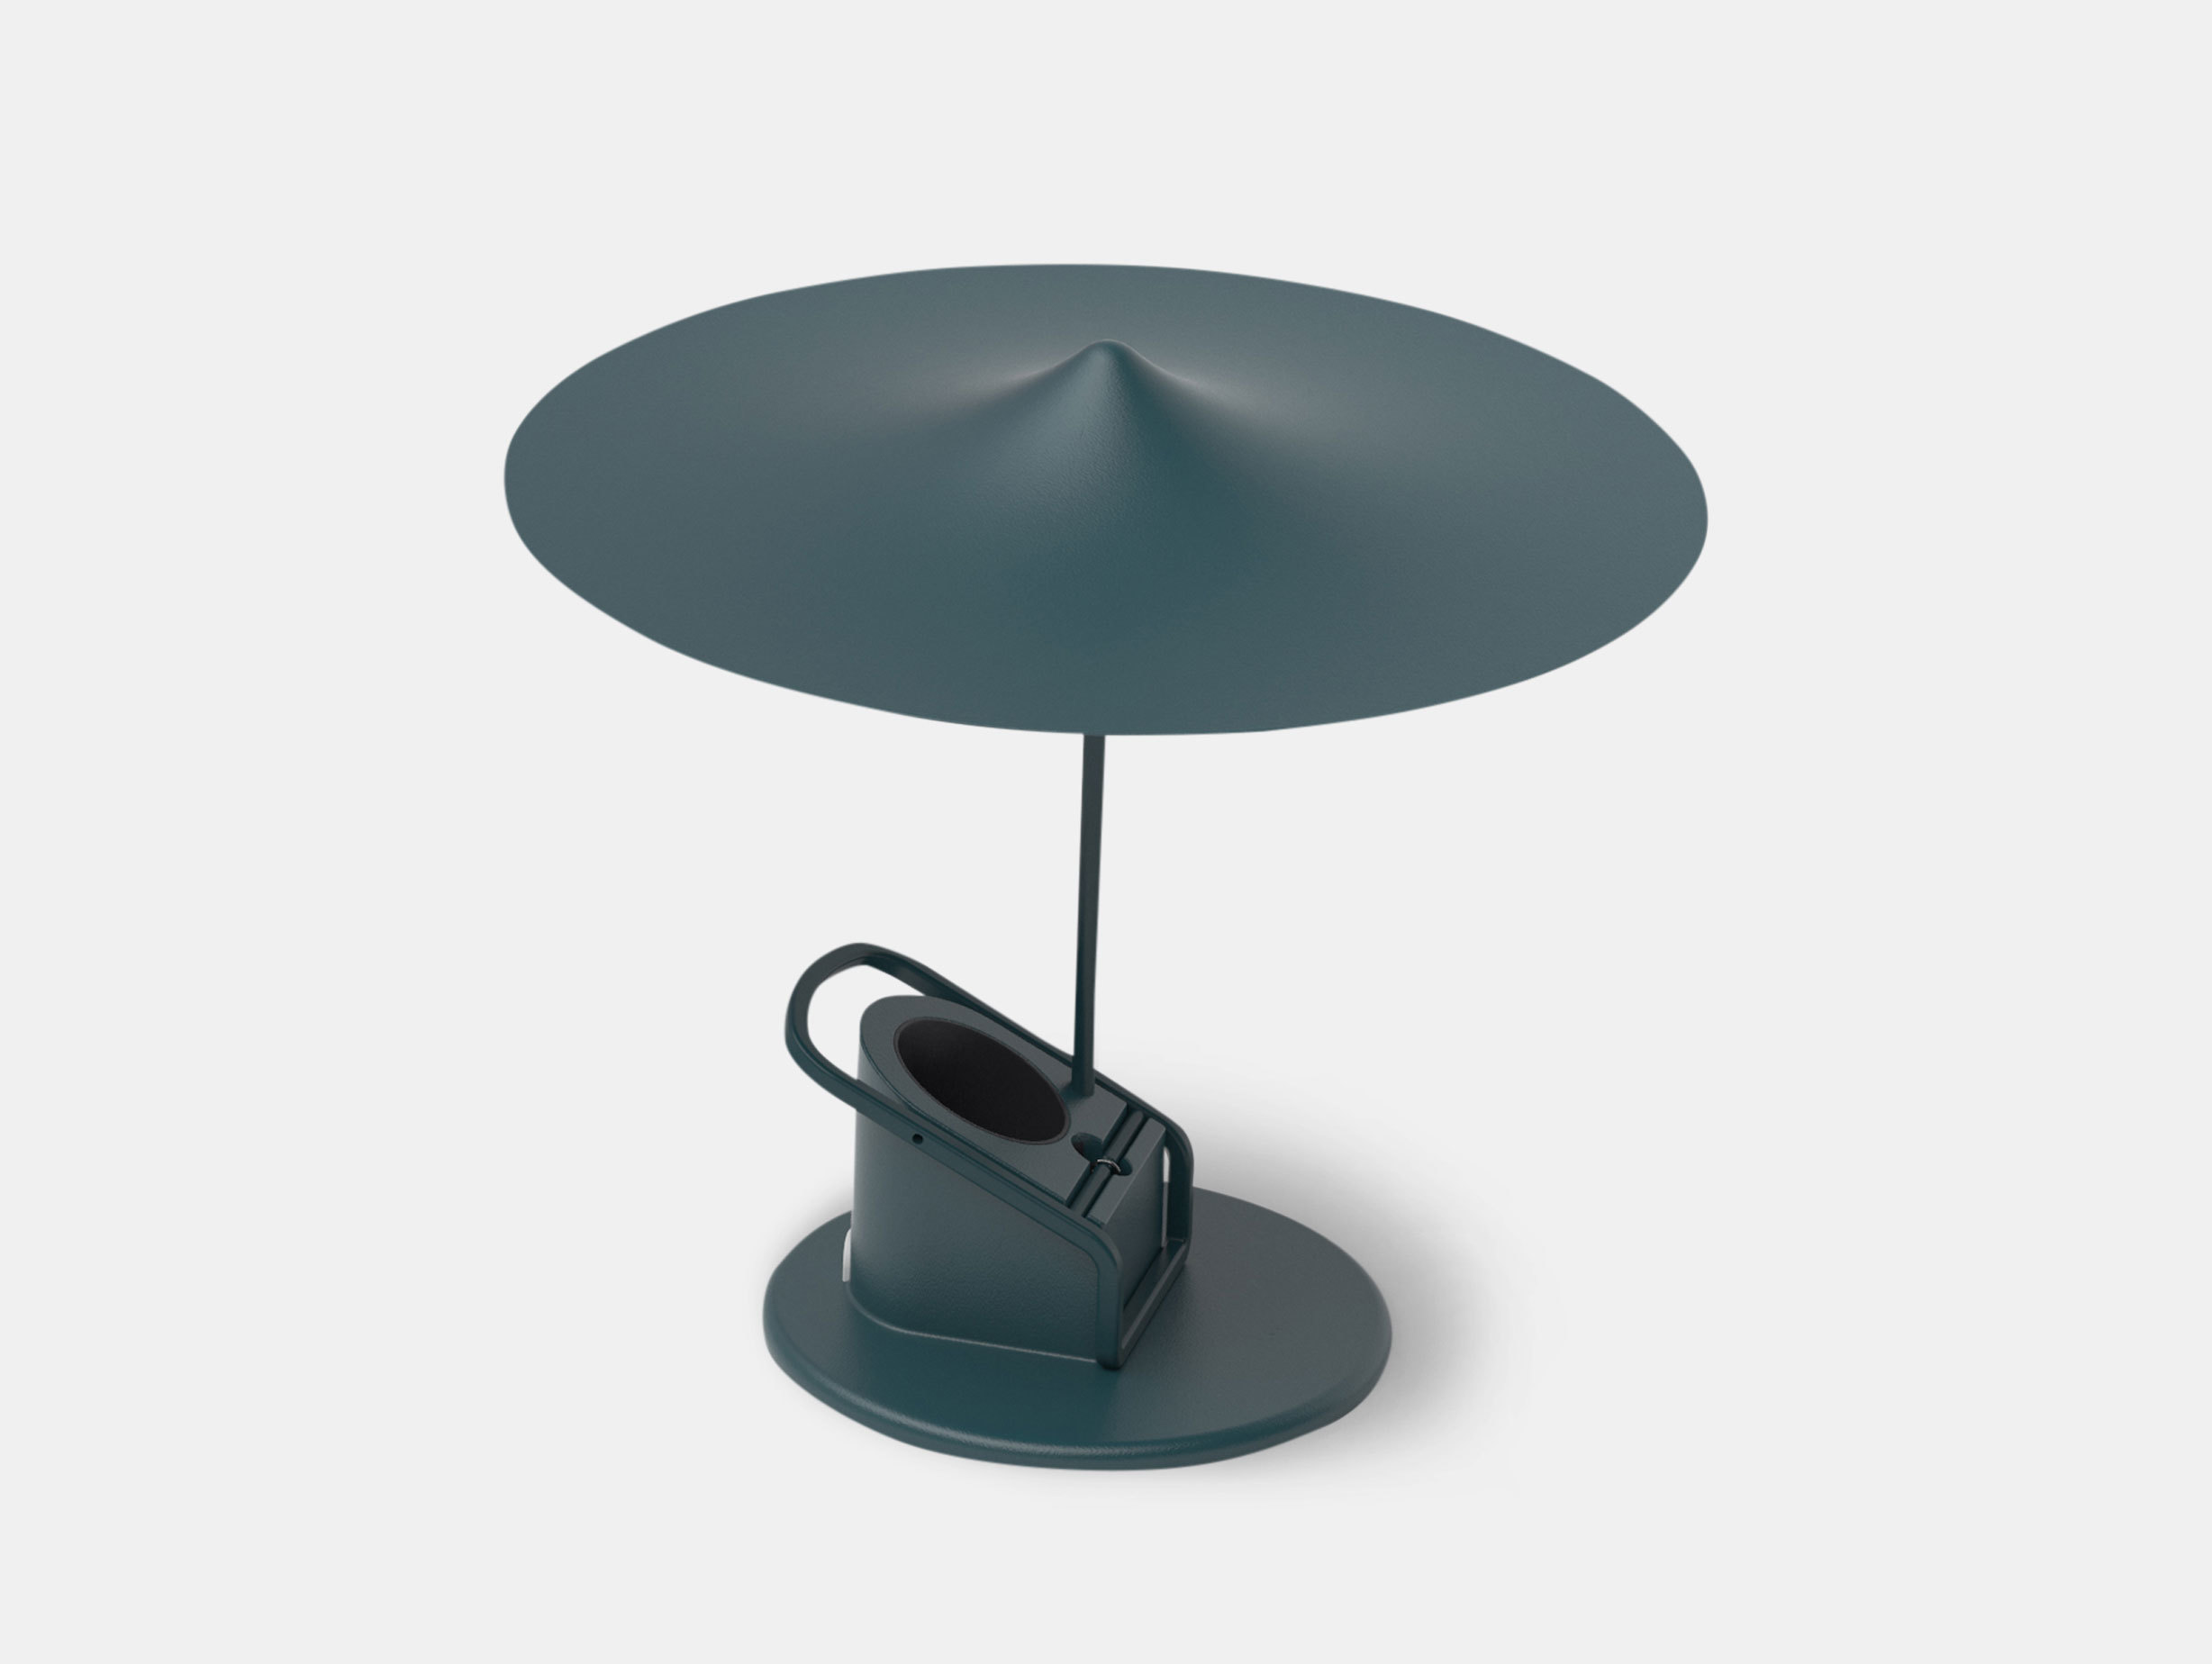 W153 Île Table & Wall Lamp image 1